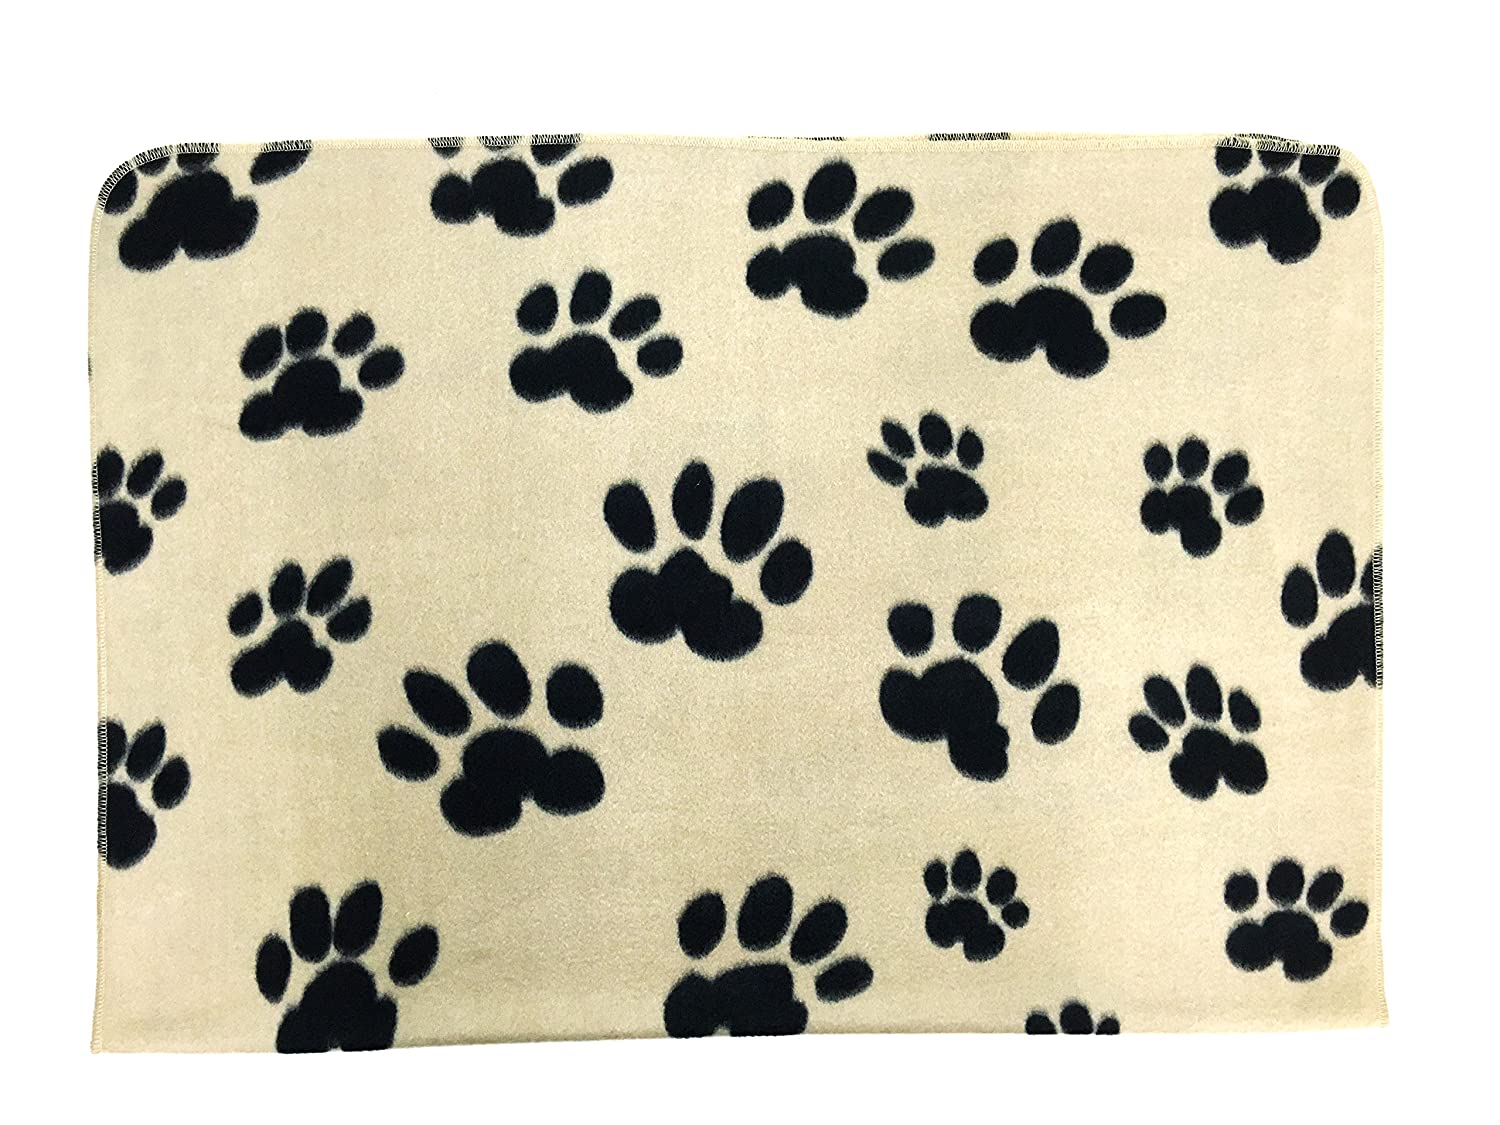 Twingo Pet Blanket, Brown Paw Print, Soft Fleece Fabric All Year Round Puppy Kitten Bed Warm Sleep Mat. 40 inch x28 inch Perfect for Small & Medium Size Pet